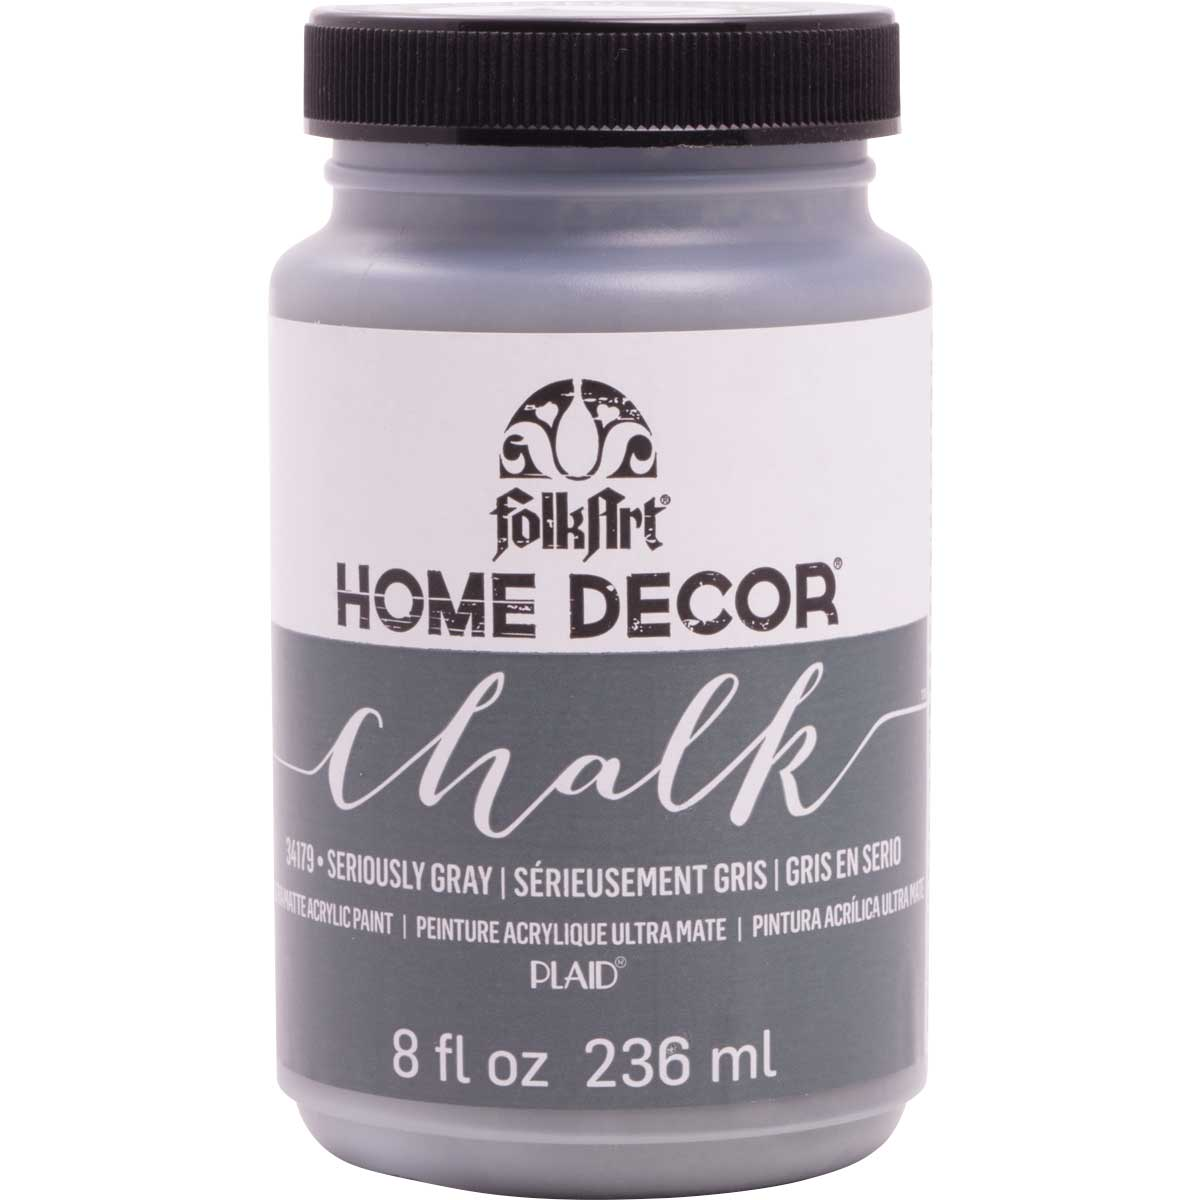 FolkArt ® Home Decor™  Chalk - Seriously Gray, 8 oz. - 34179